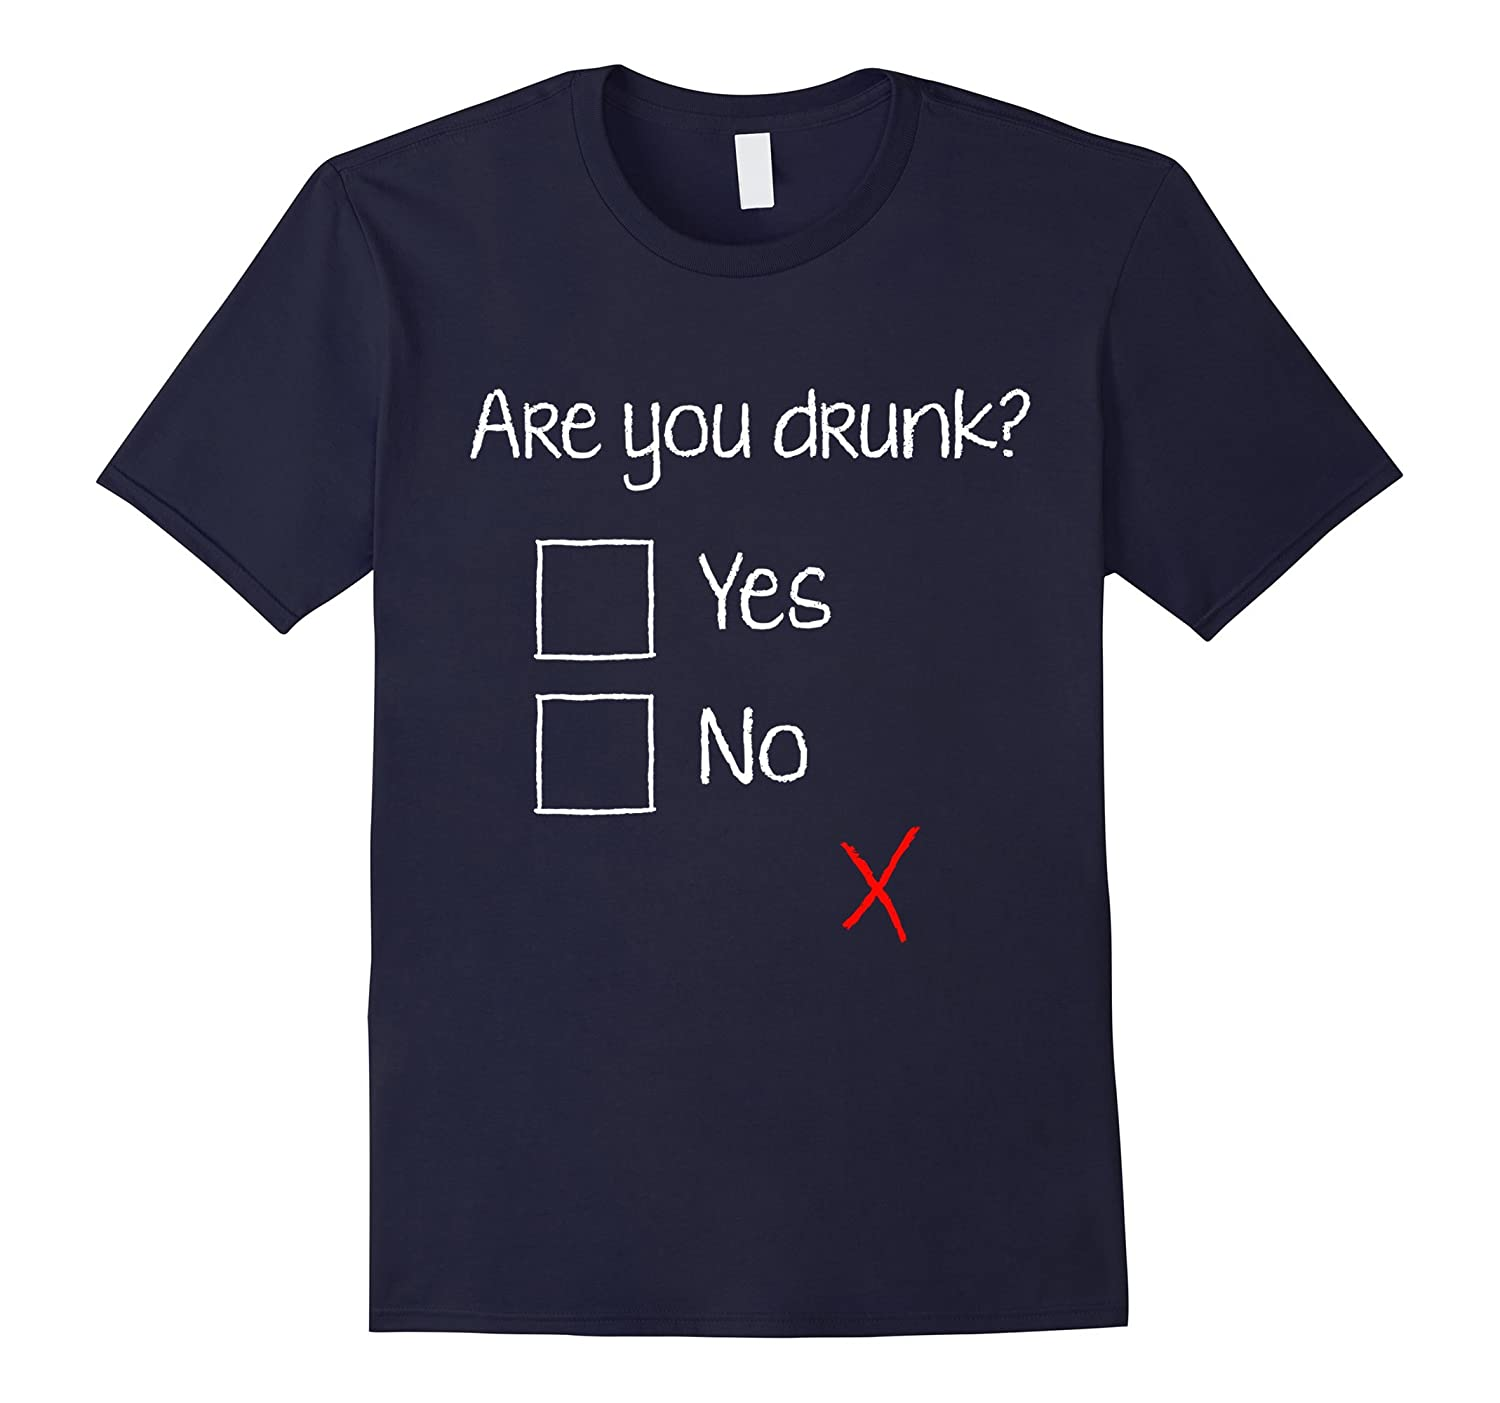 Are You Drunk? Yes No T-shirt Sober Question Funny Shirt-CD